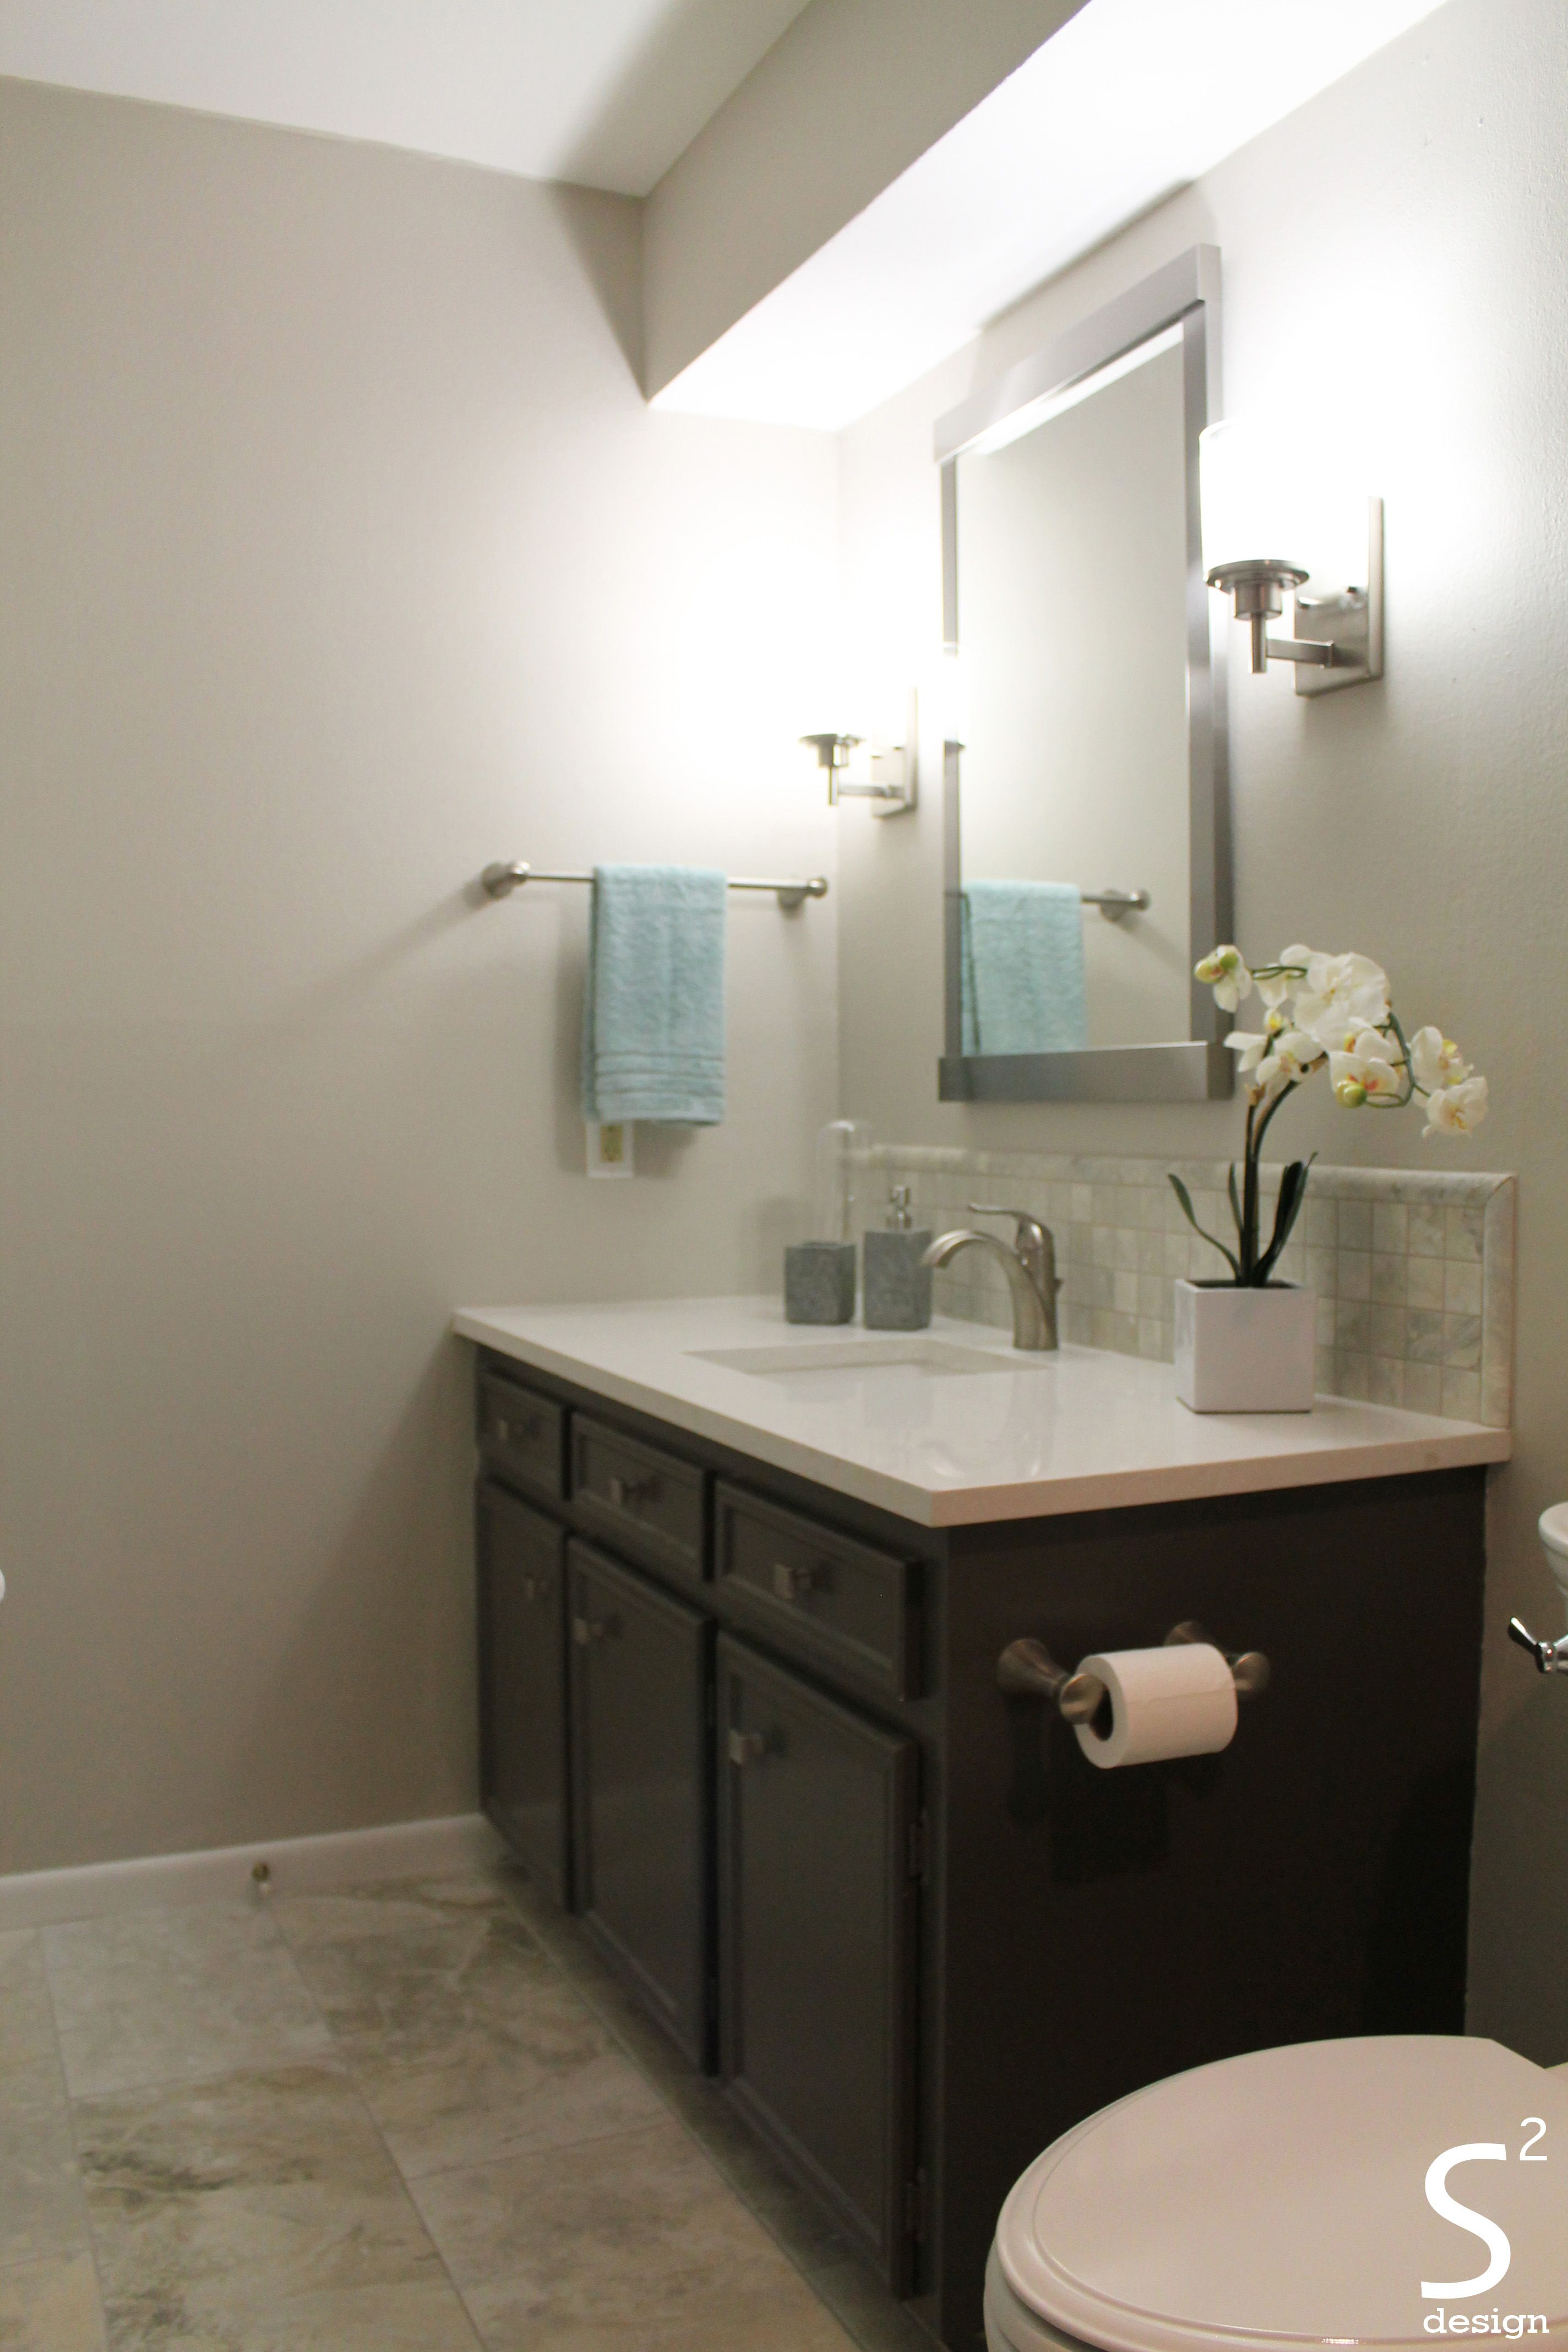 Bathroom Grey Blue Shower Curtains White Countertops Cabinets Walls Houston Texas Modern Bathrooms Design Projects Brushed Nickel